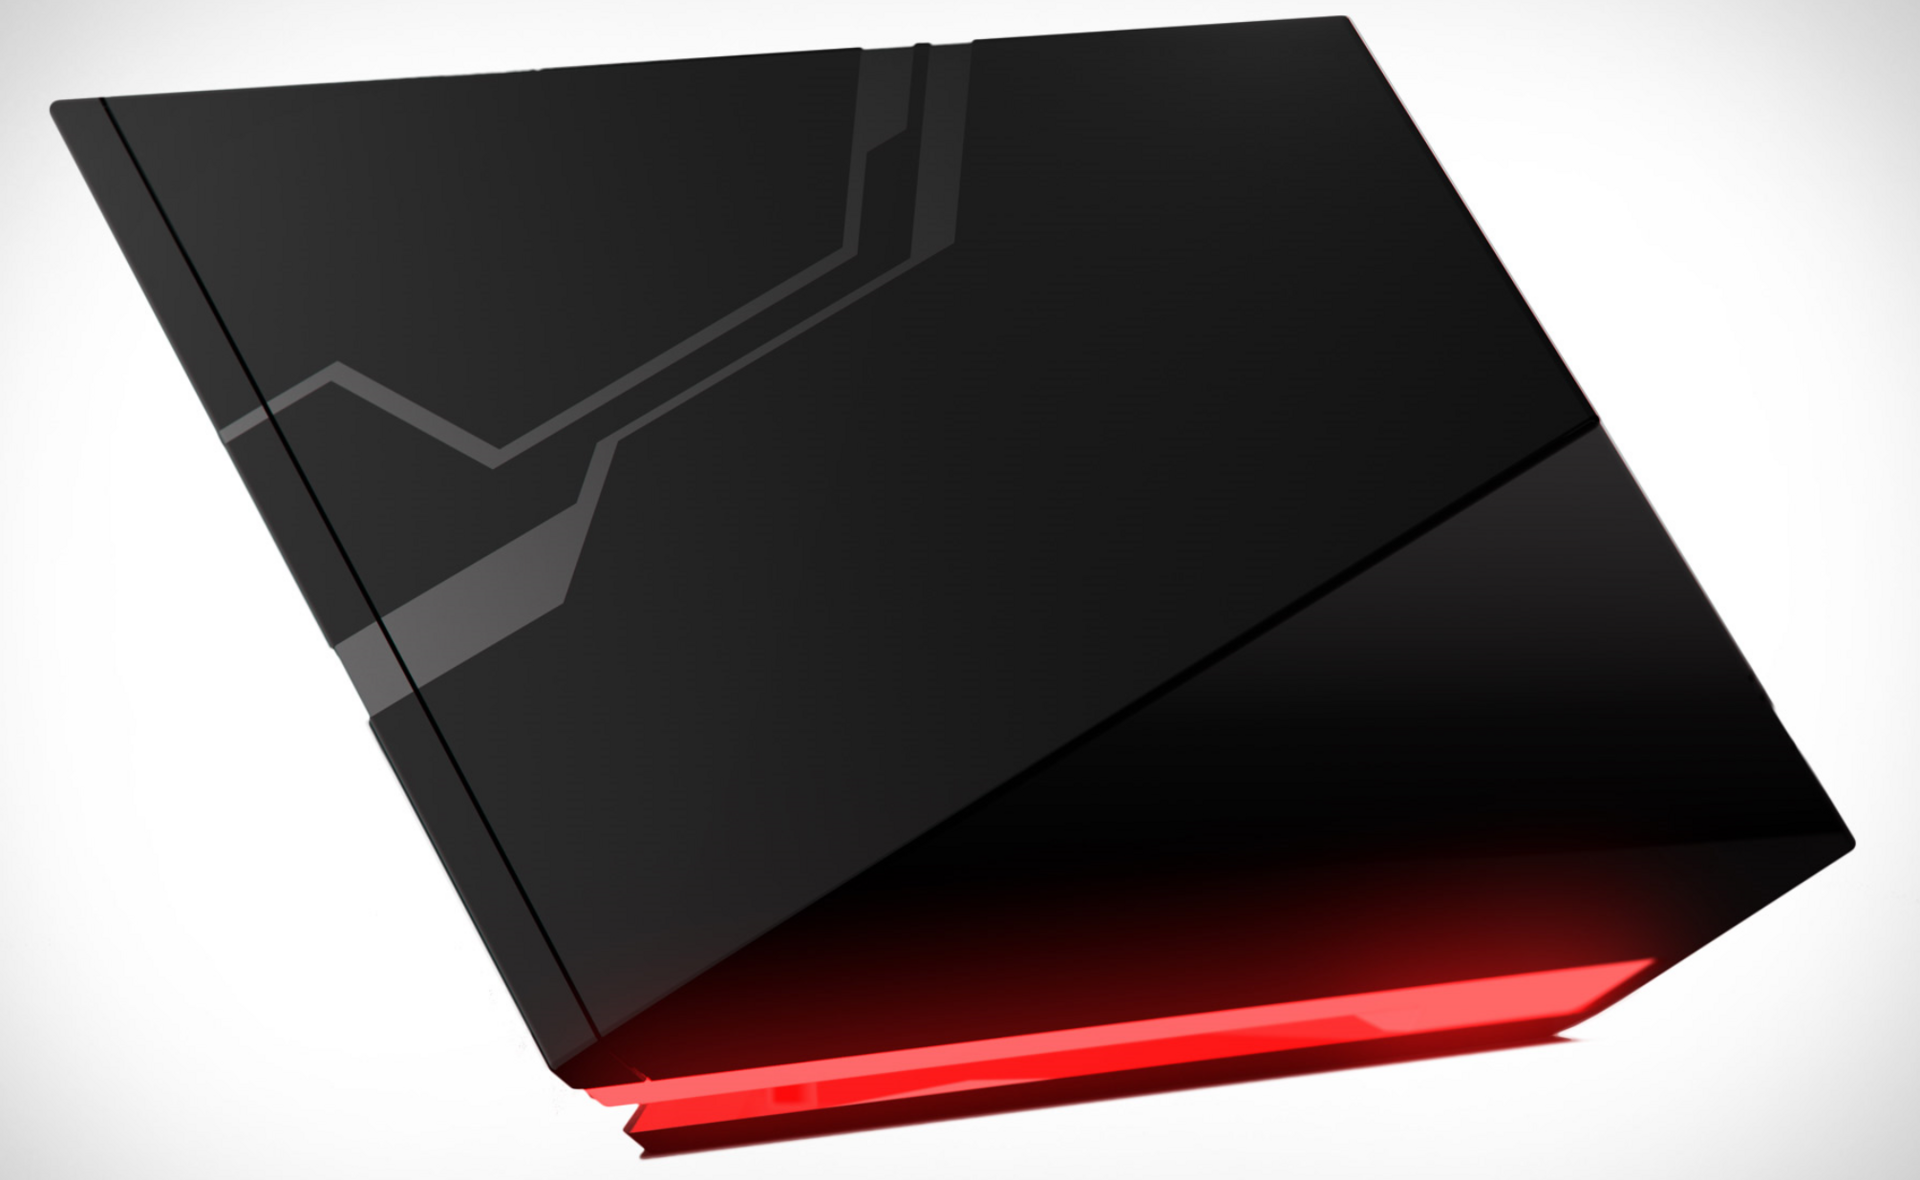 Blade intros Shadow Cloud-based Gaming PC for US$140 plus